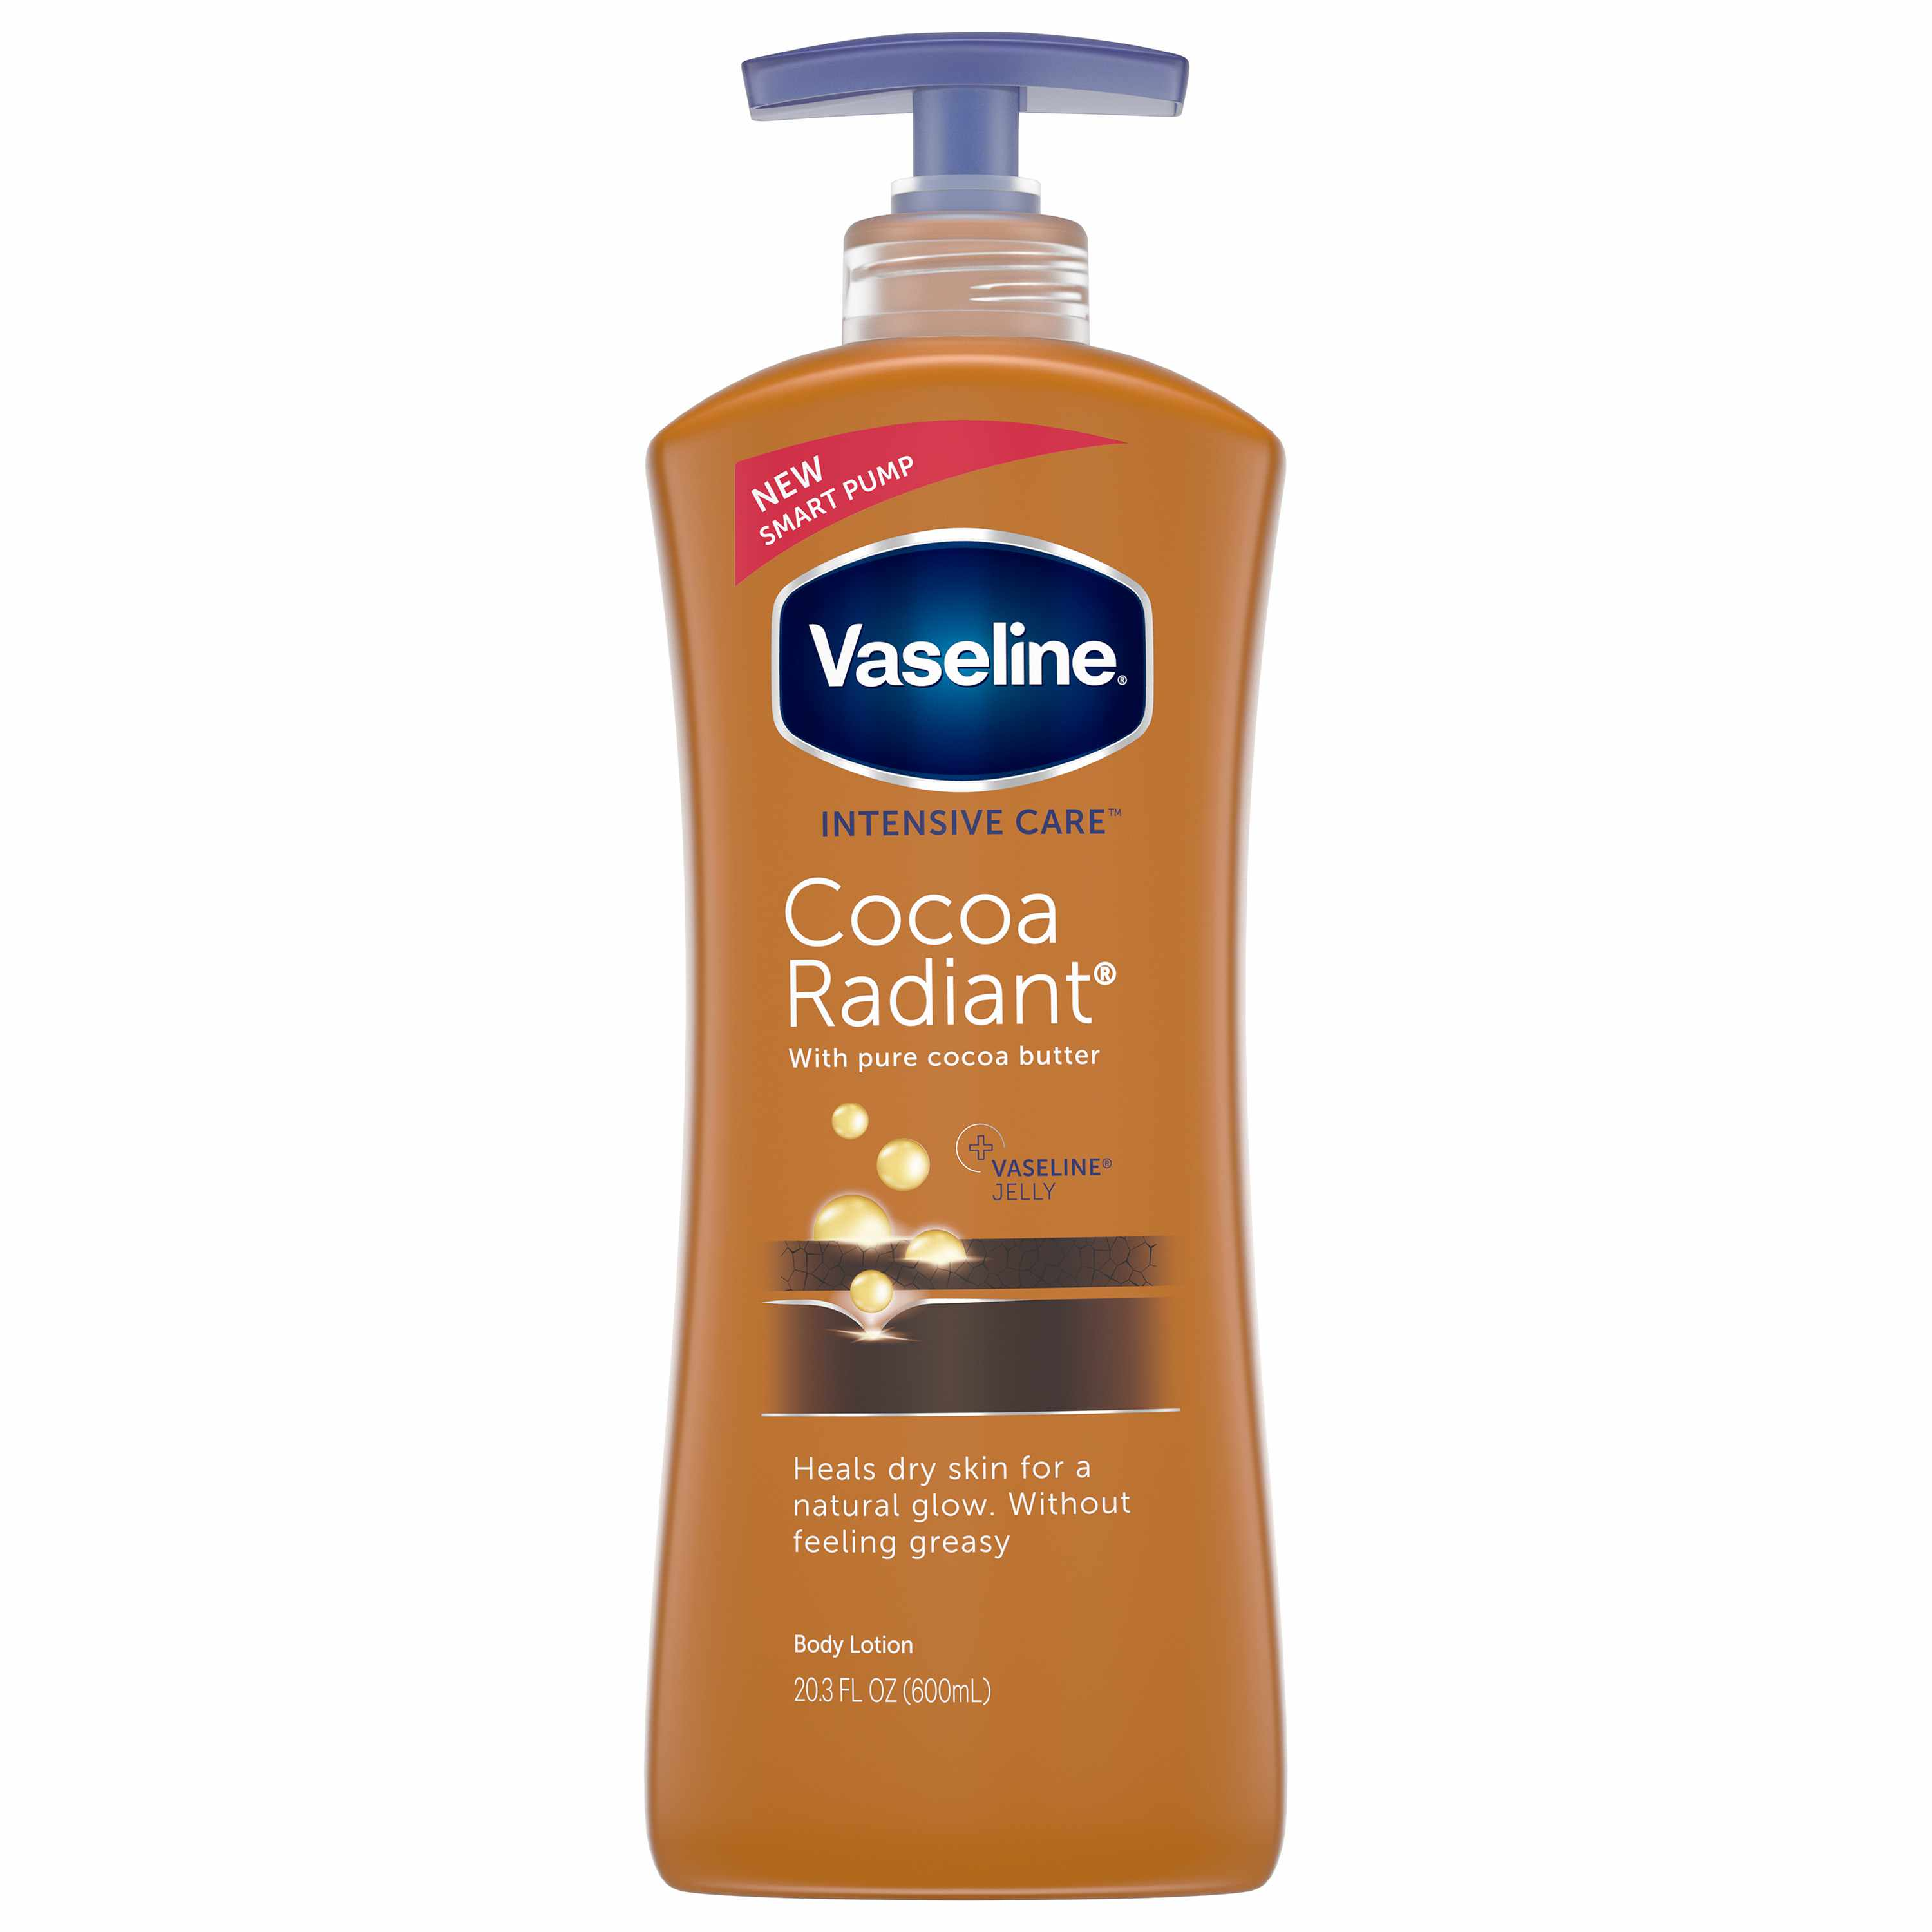 Vaseline Intensive Care Cocoa Radiant Body Lotion